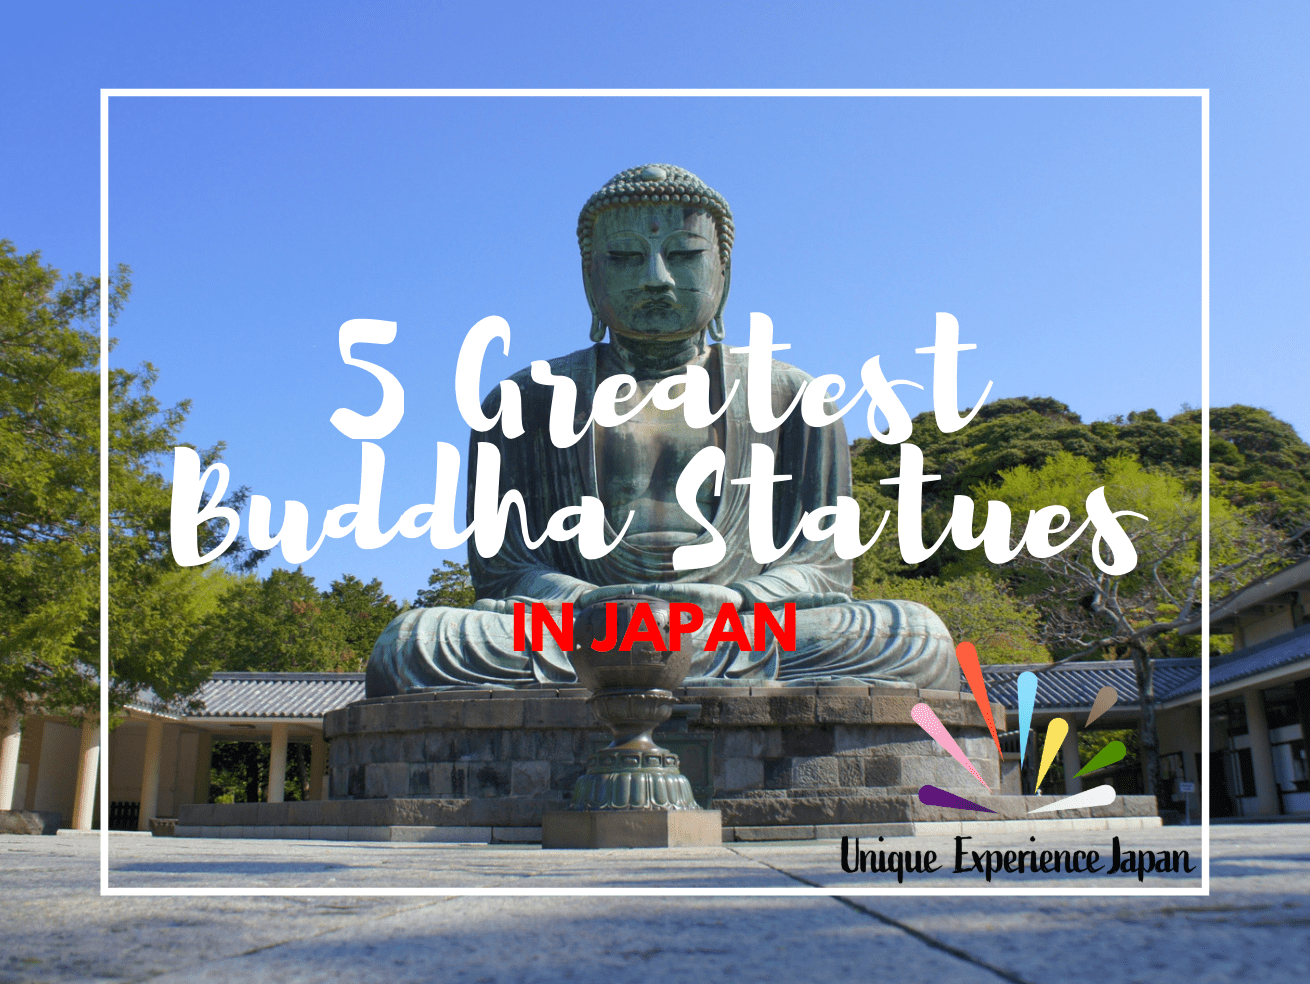 Best Buddha Statues in Japan